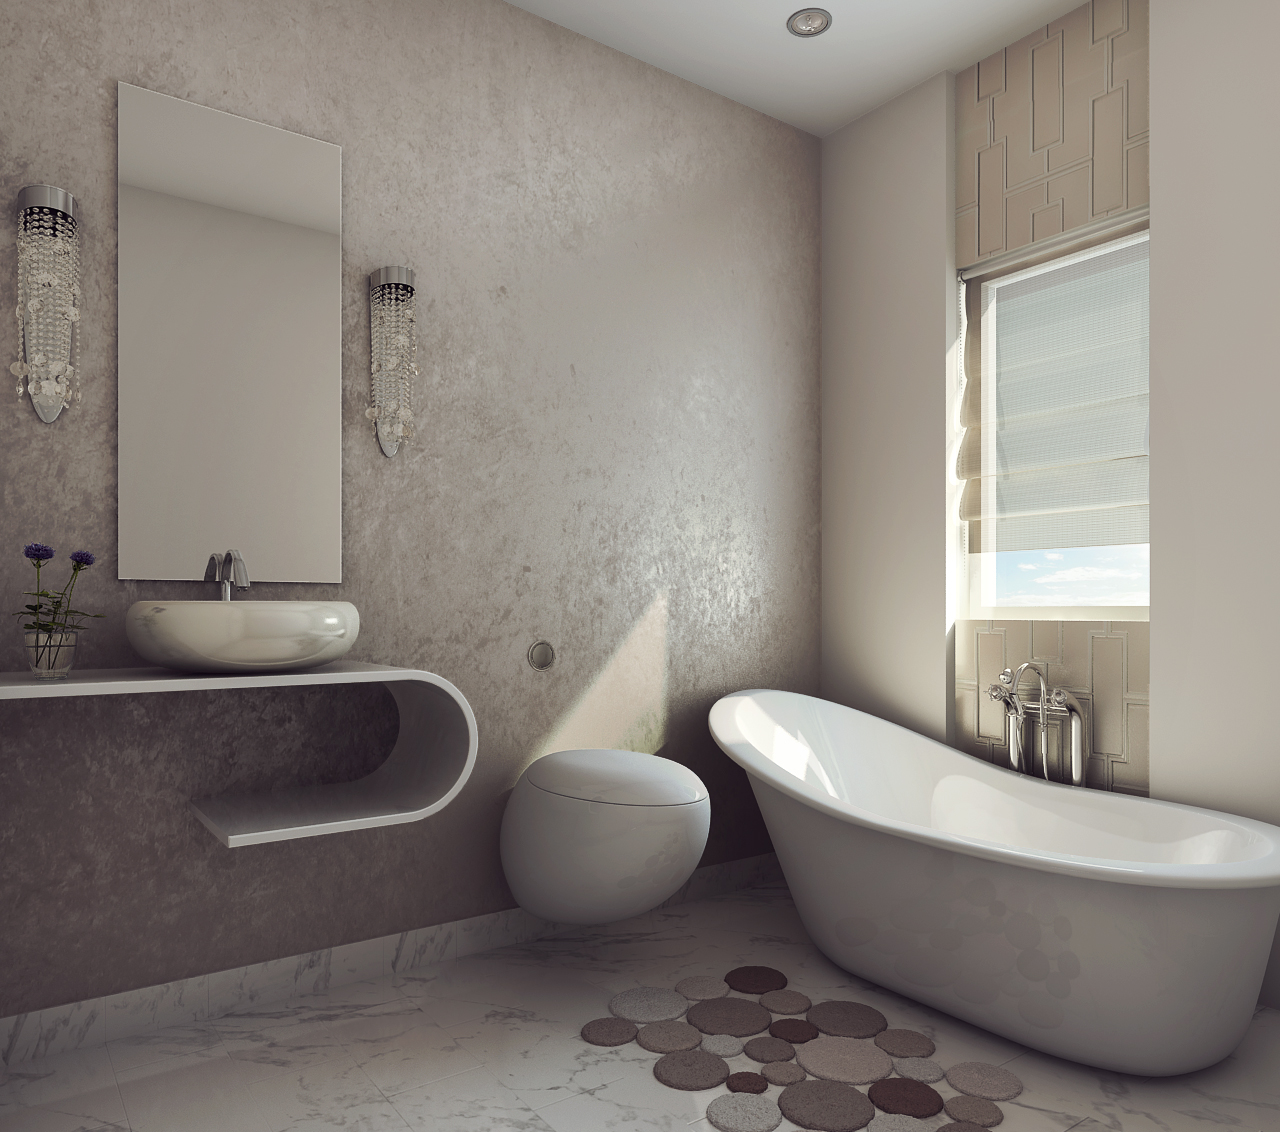 Modern earthy design bath room free 3d model max for Model bathroom designs